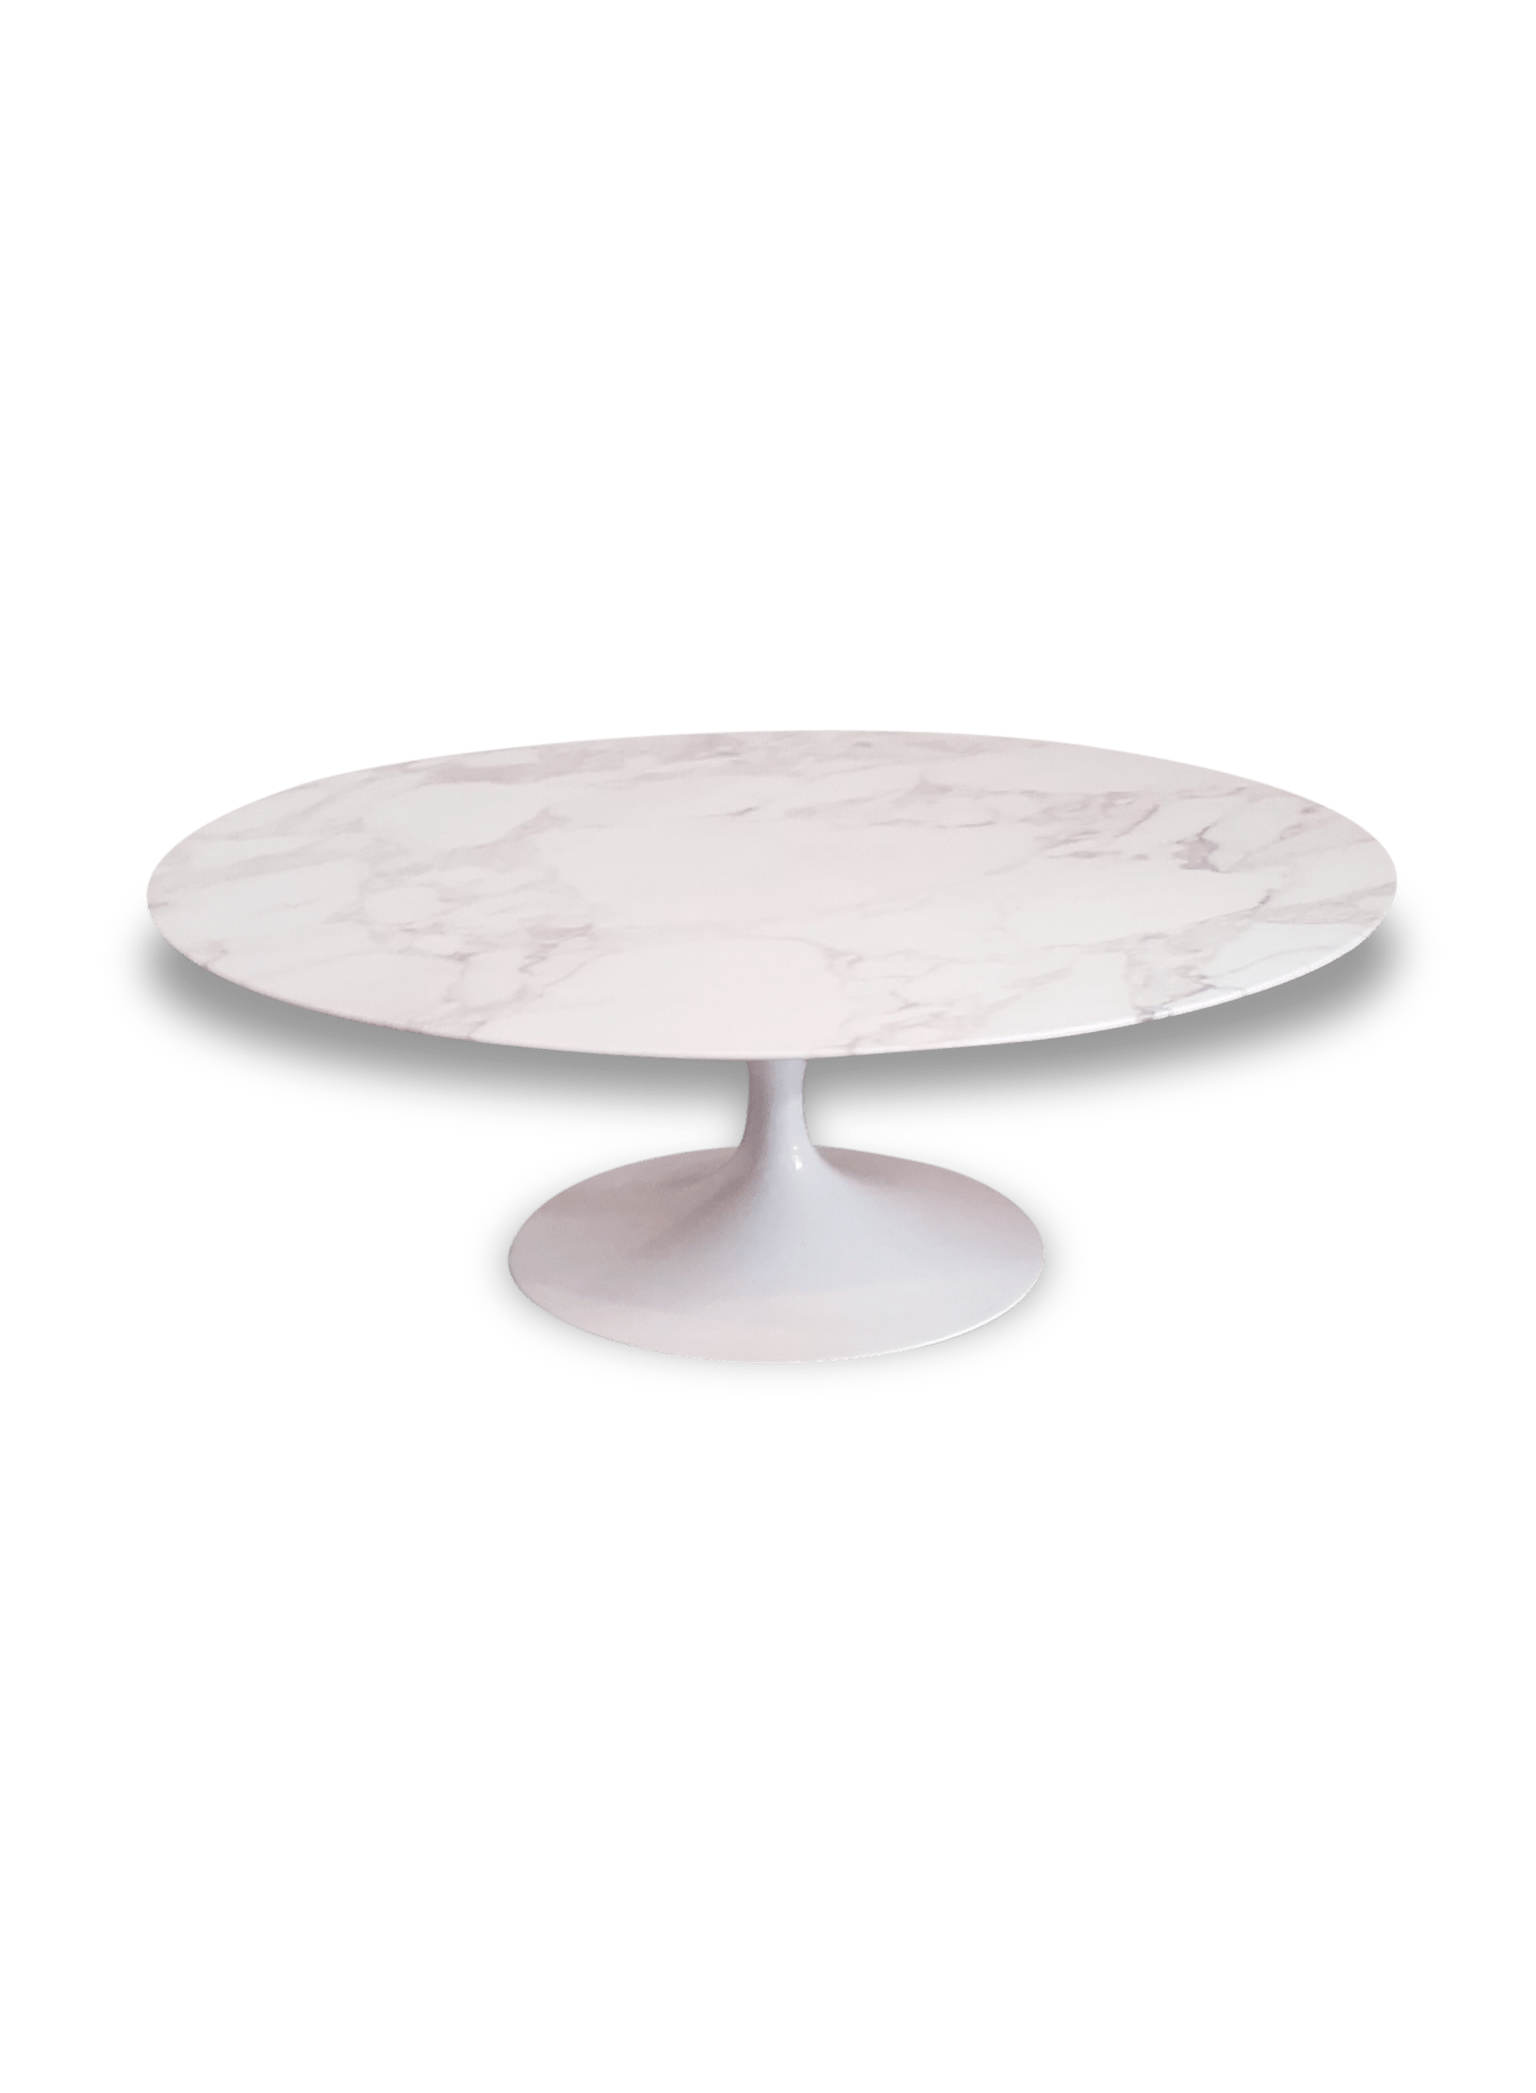 Ampm Table Marbre Table Knoll Ovale Marbre Blanc Table Ovale Marbre Table